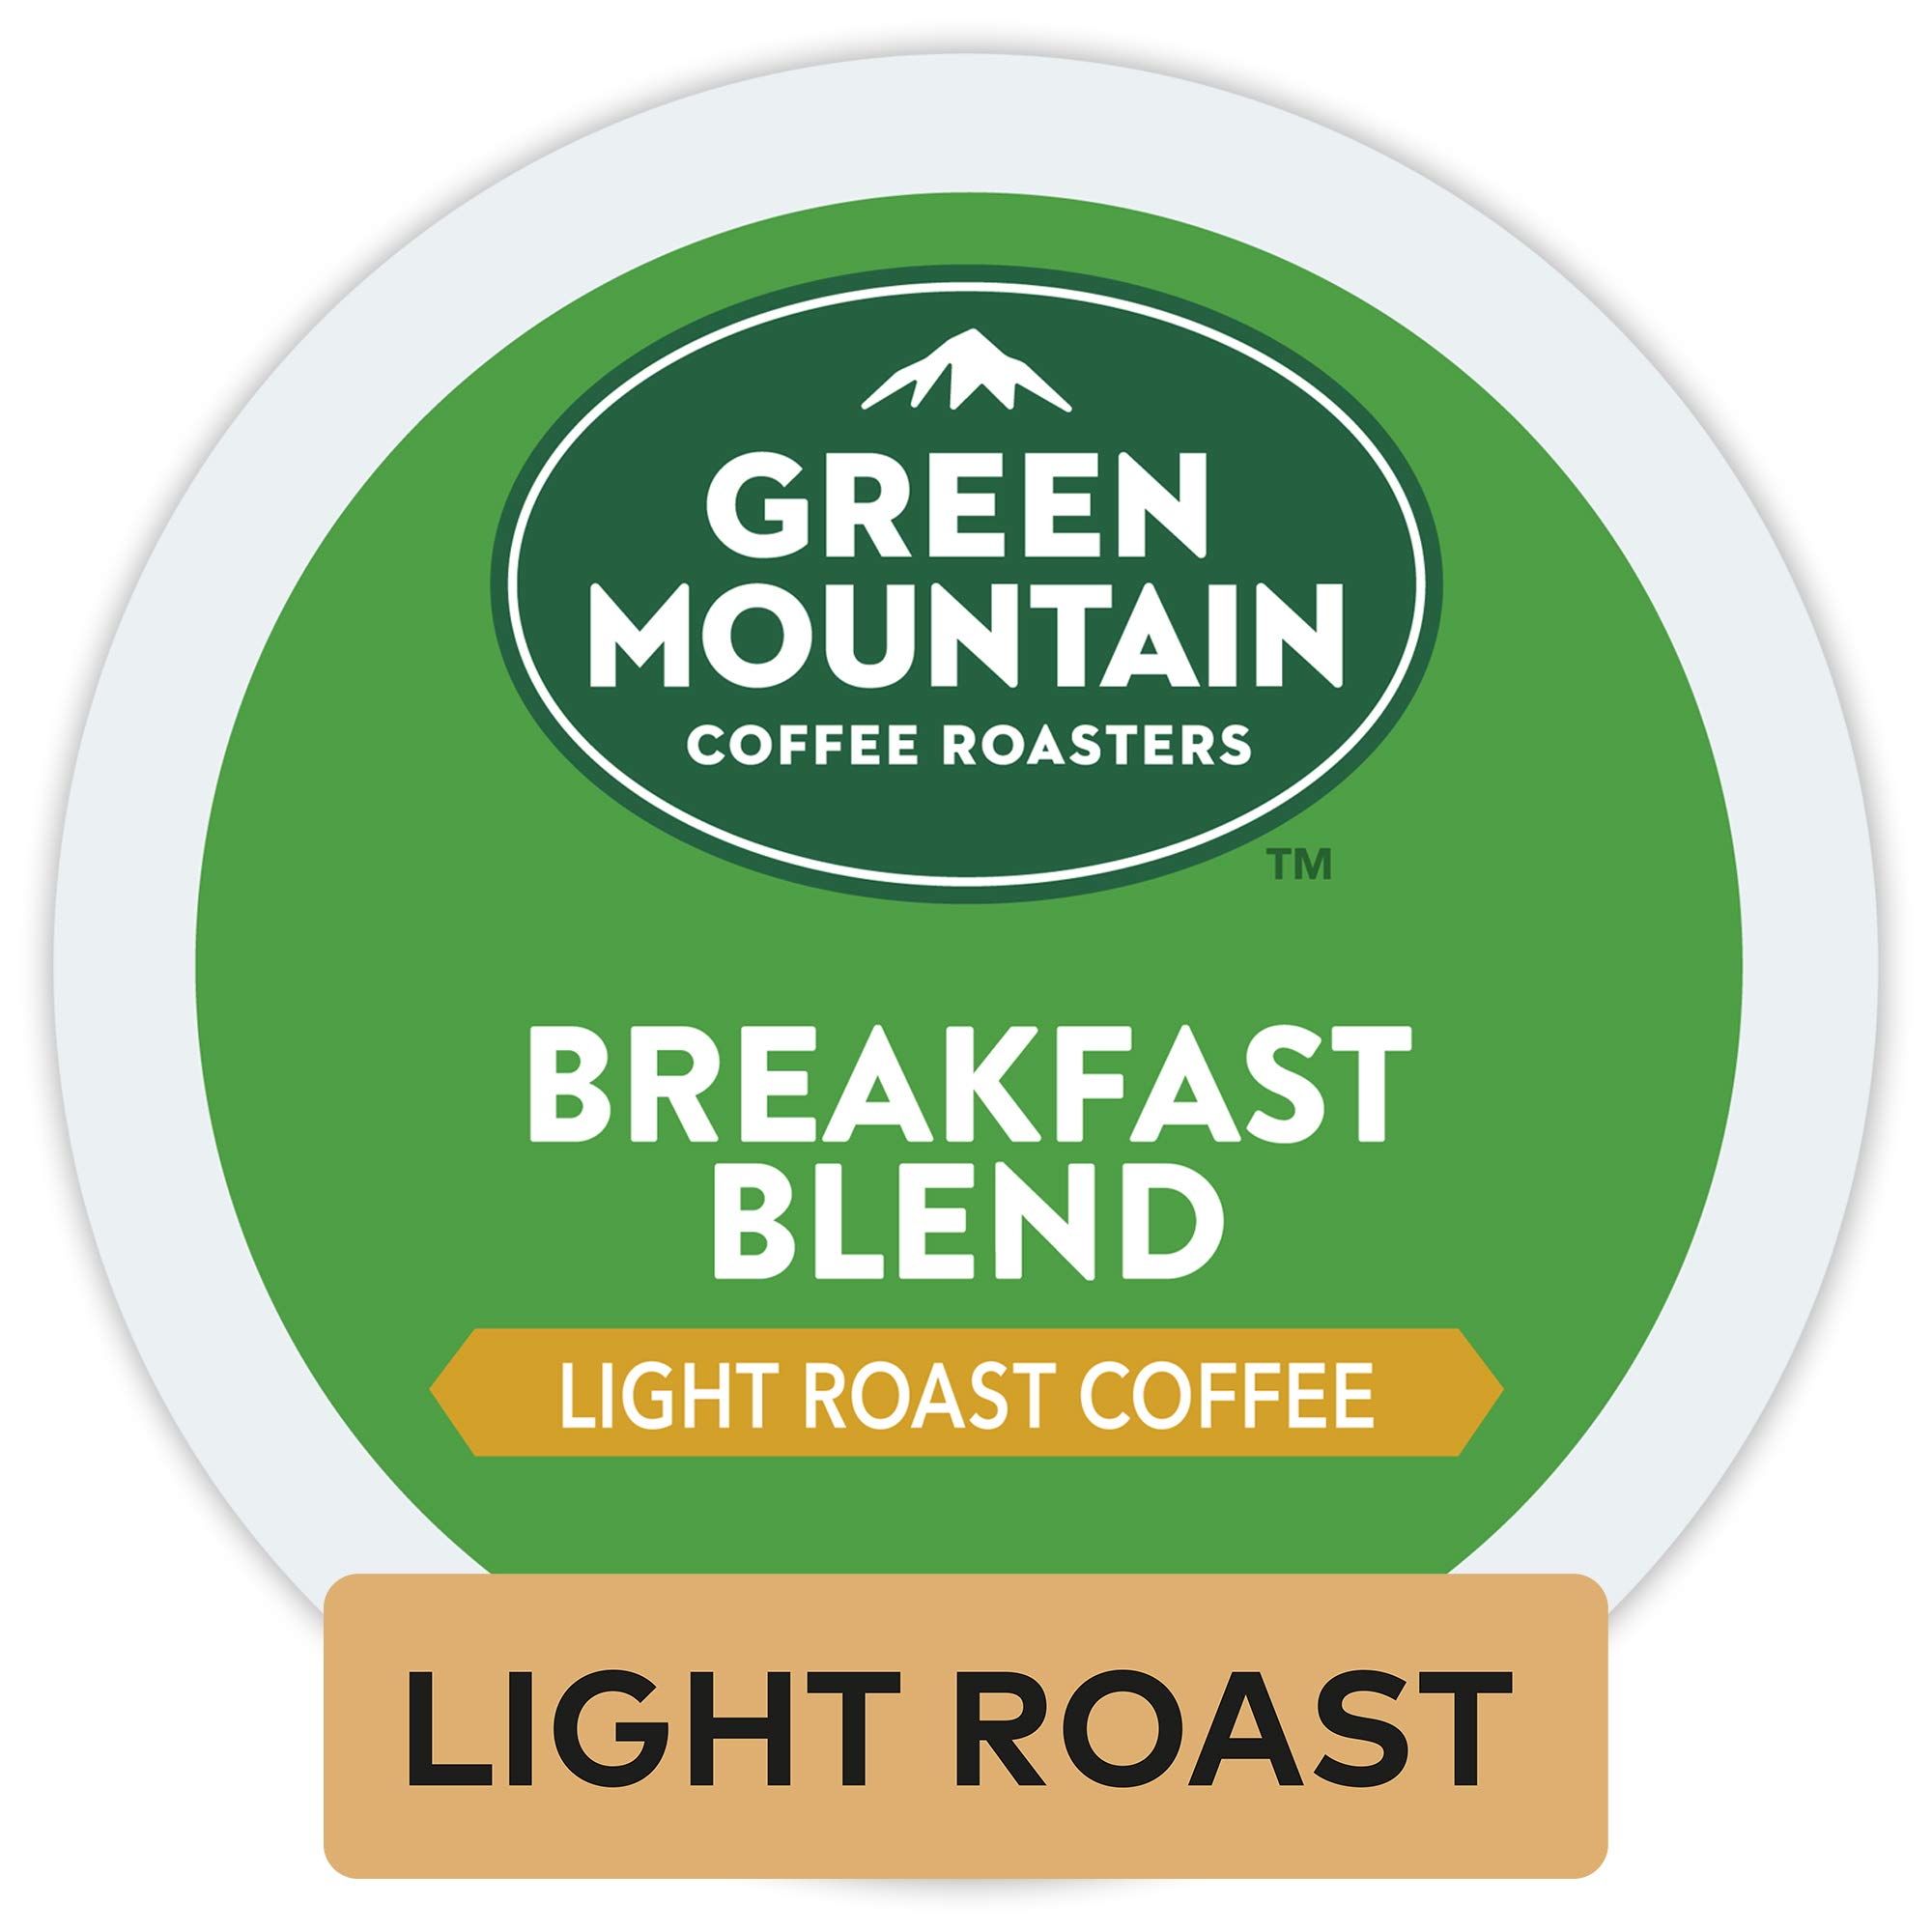 Green Mountain Coffee Roasters Breakfast Blend, Single Serve Coffee K-Cup Pod, Light Roast, 12 Count, Pack of 6